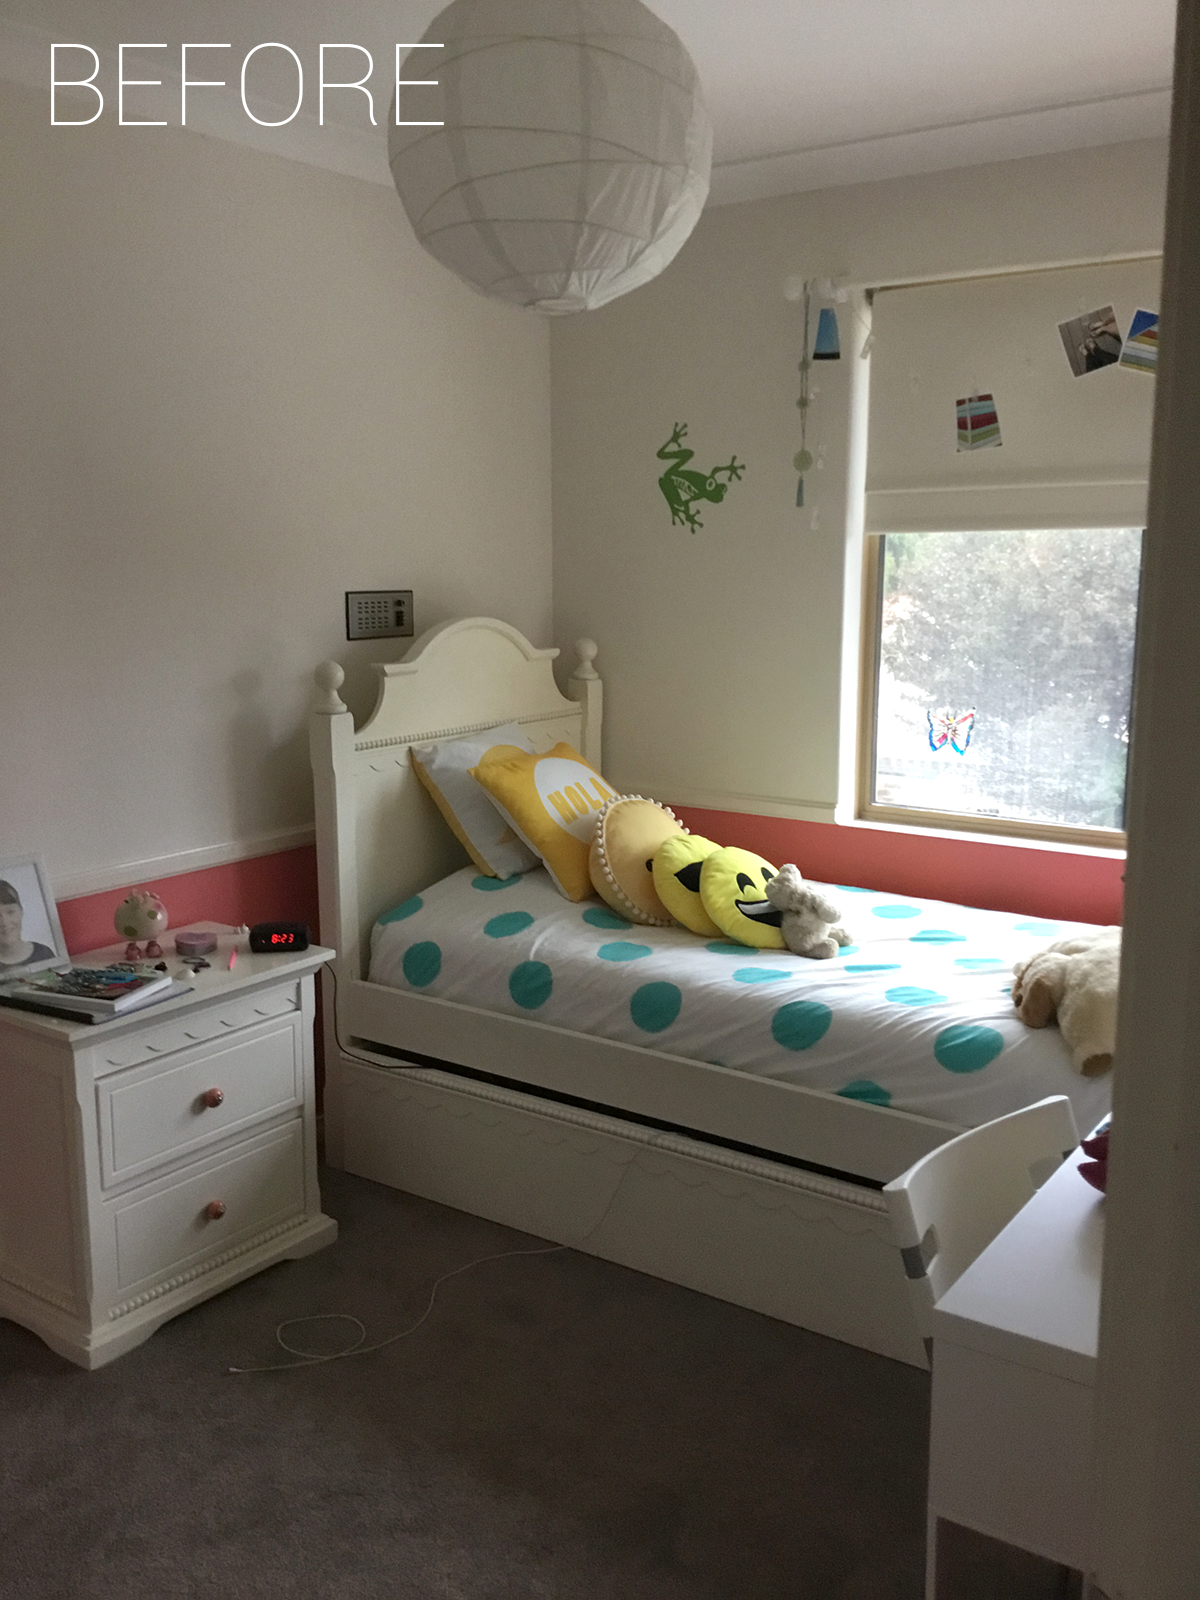 Ella Liked The Idea Of An Urban Bedroom So We Chose To Decorate The Room In  This Style Instead Of Furnishing It Head To Toe In Themed Product.